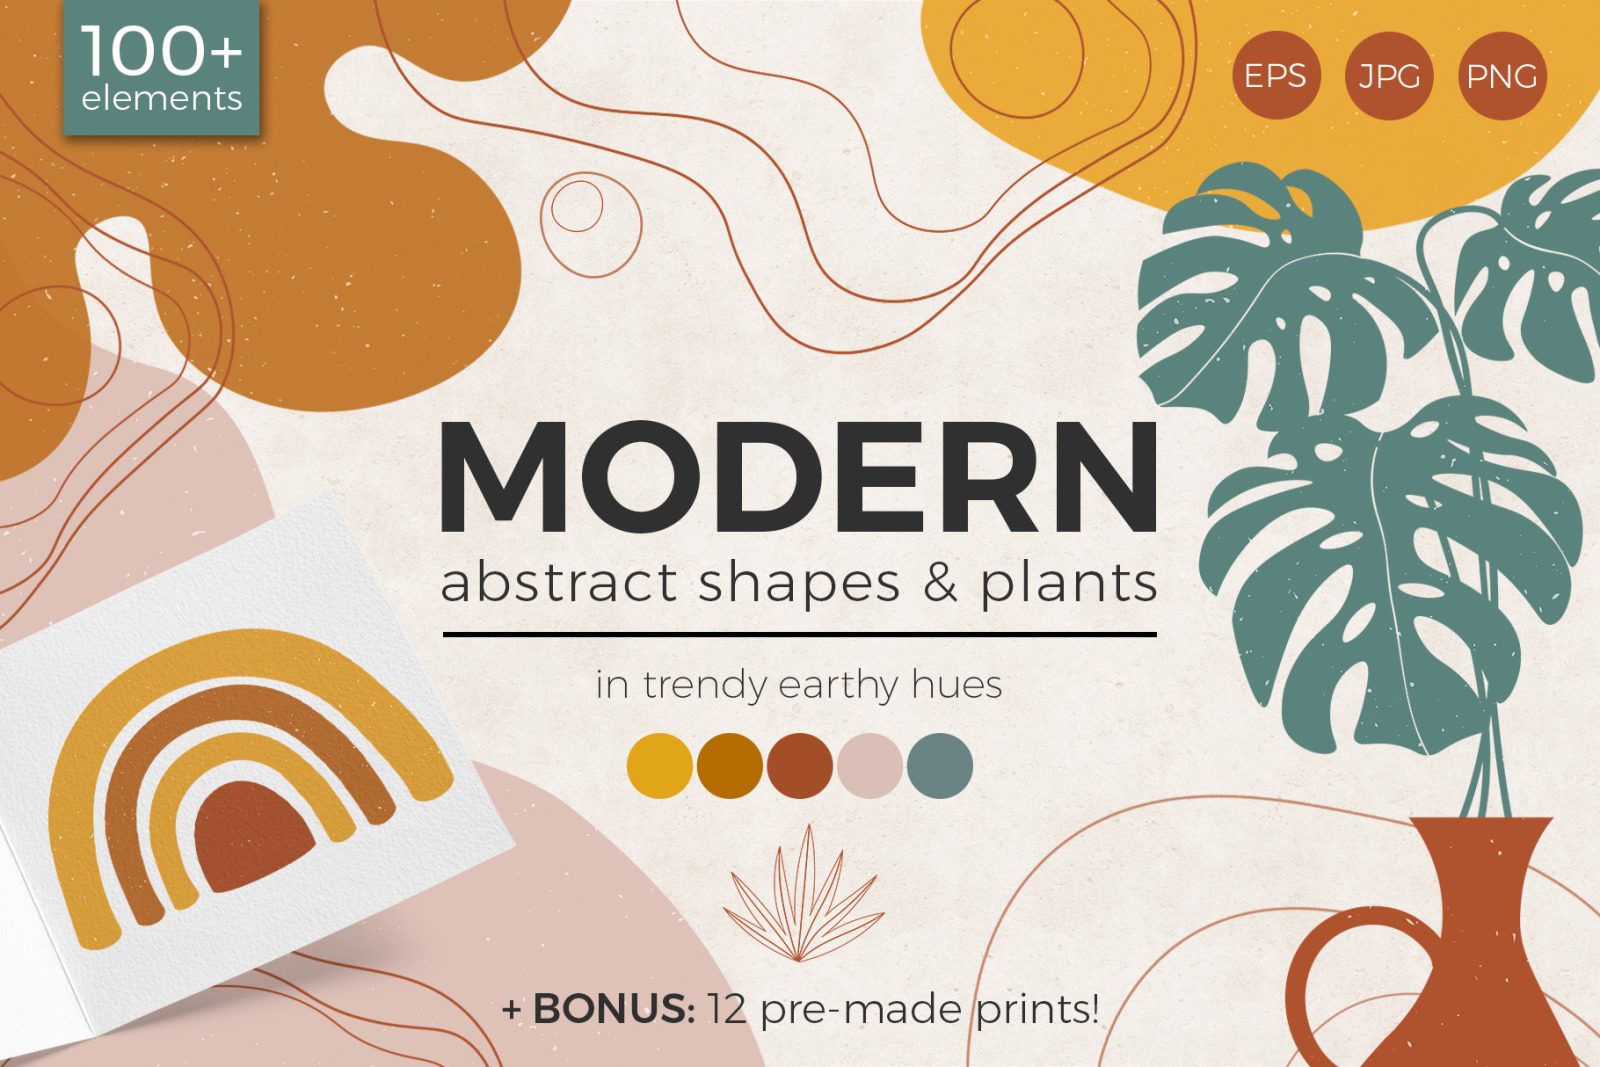 Modern Abstract Shapes And Plants In Illustrations On Yellow Images Creative Store